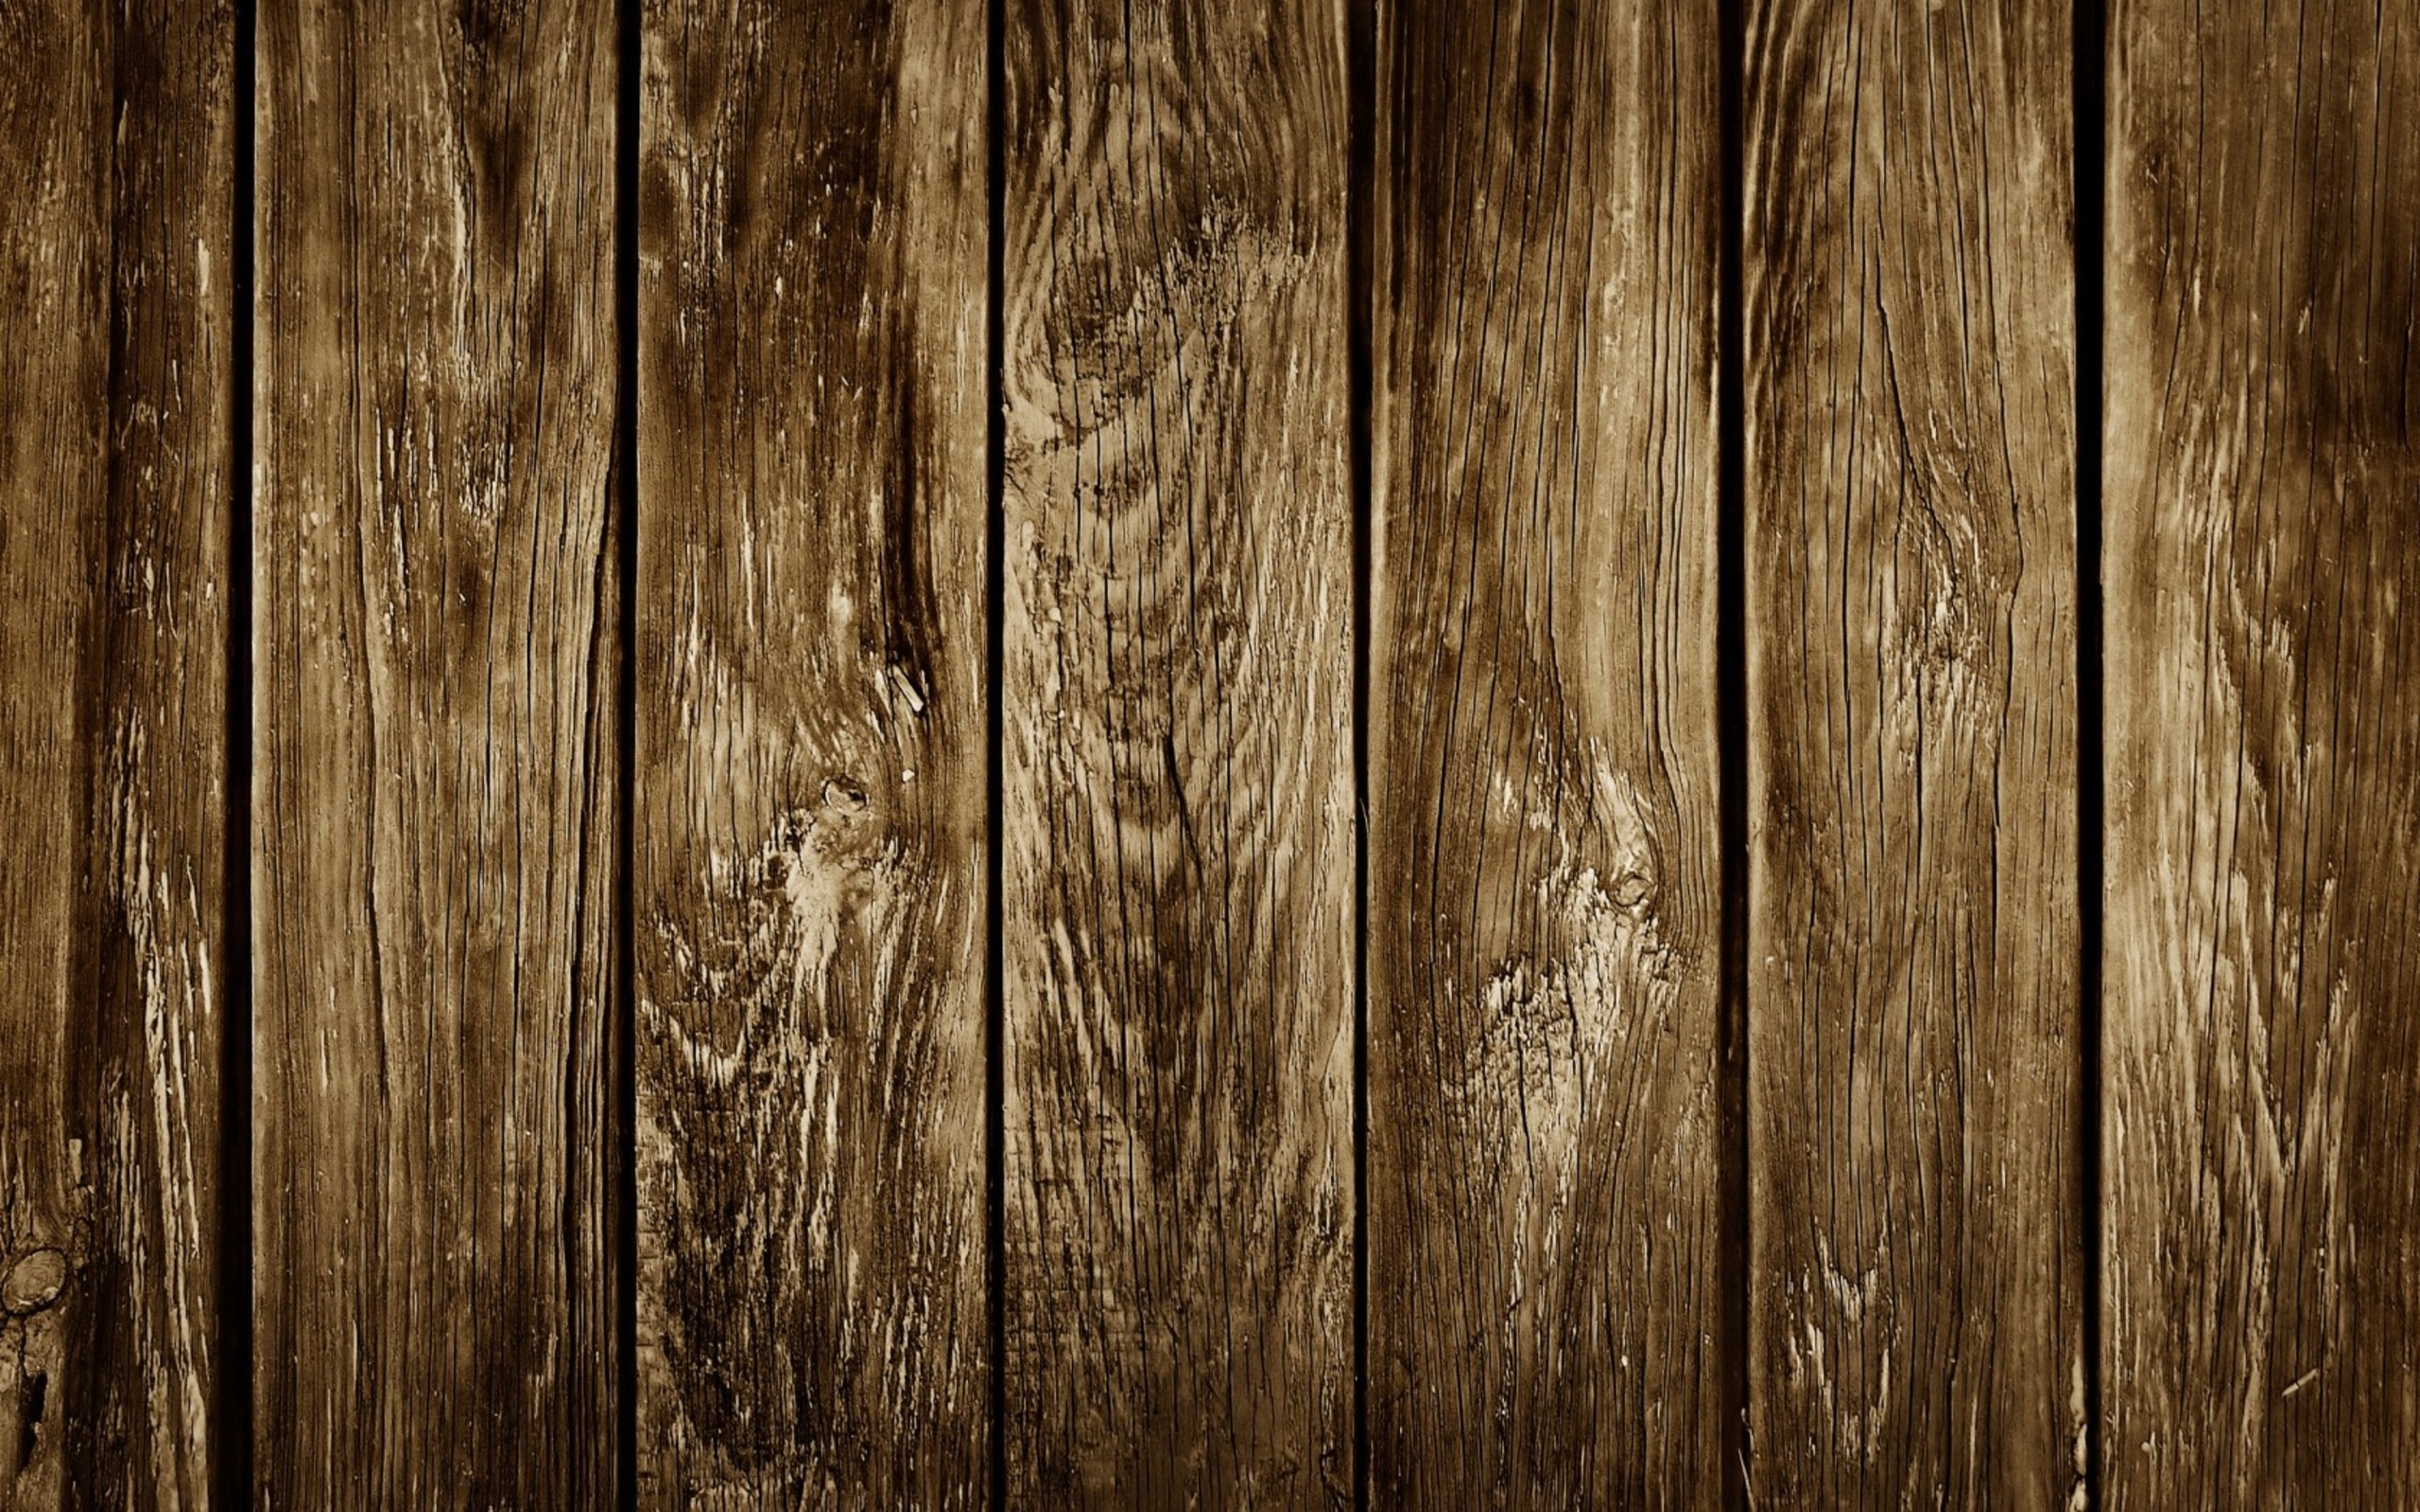 backgrounds wthemes and wood wallpapers windows 8 wood wallpaper hd themes location 7 xp changer for desktop live